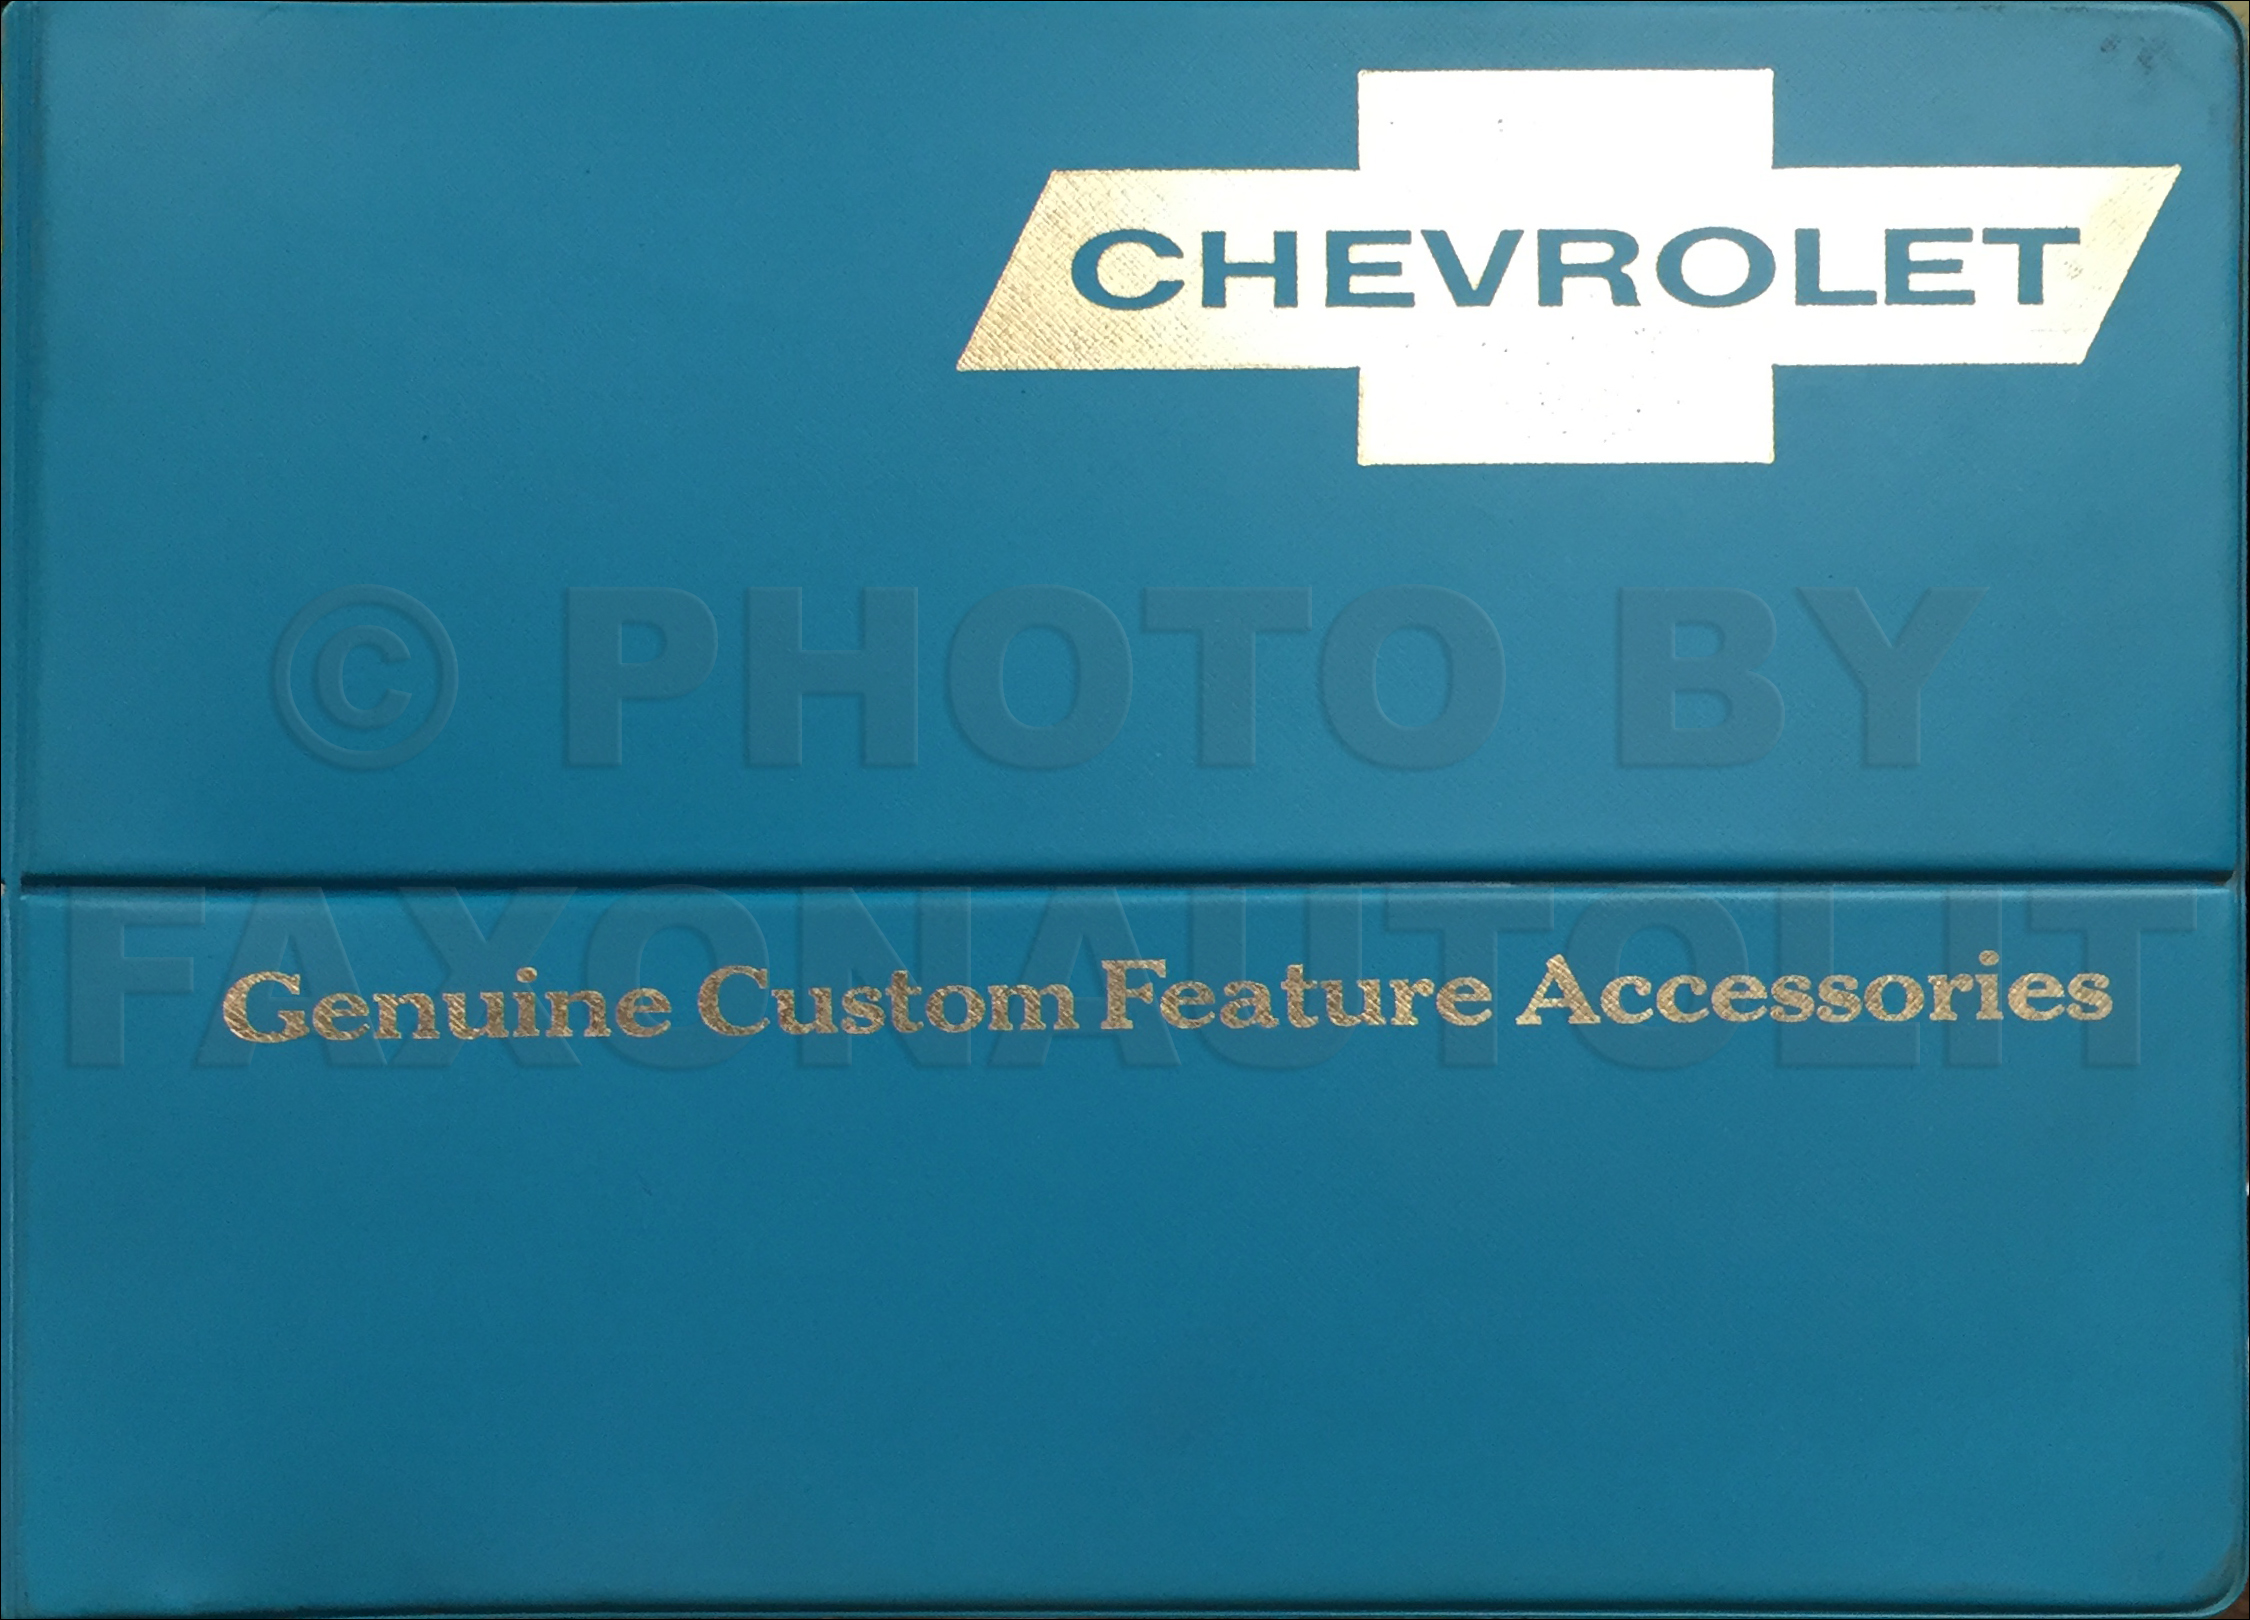 1966 Chevrolet Custom Feature Accessories Dealer Album Original